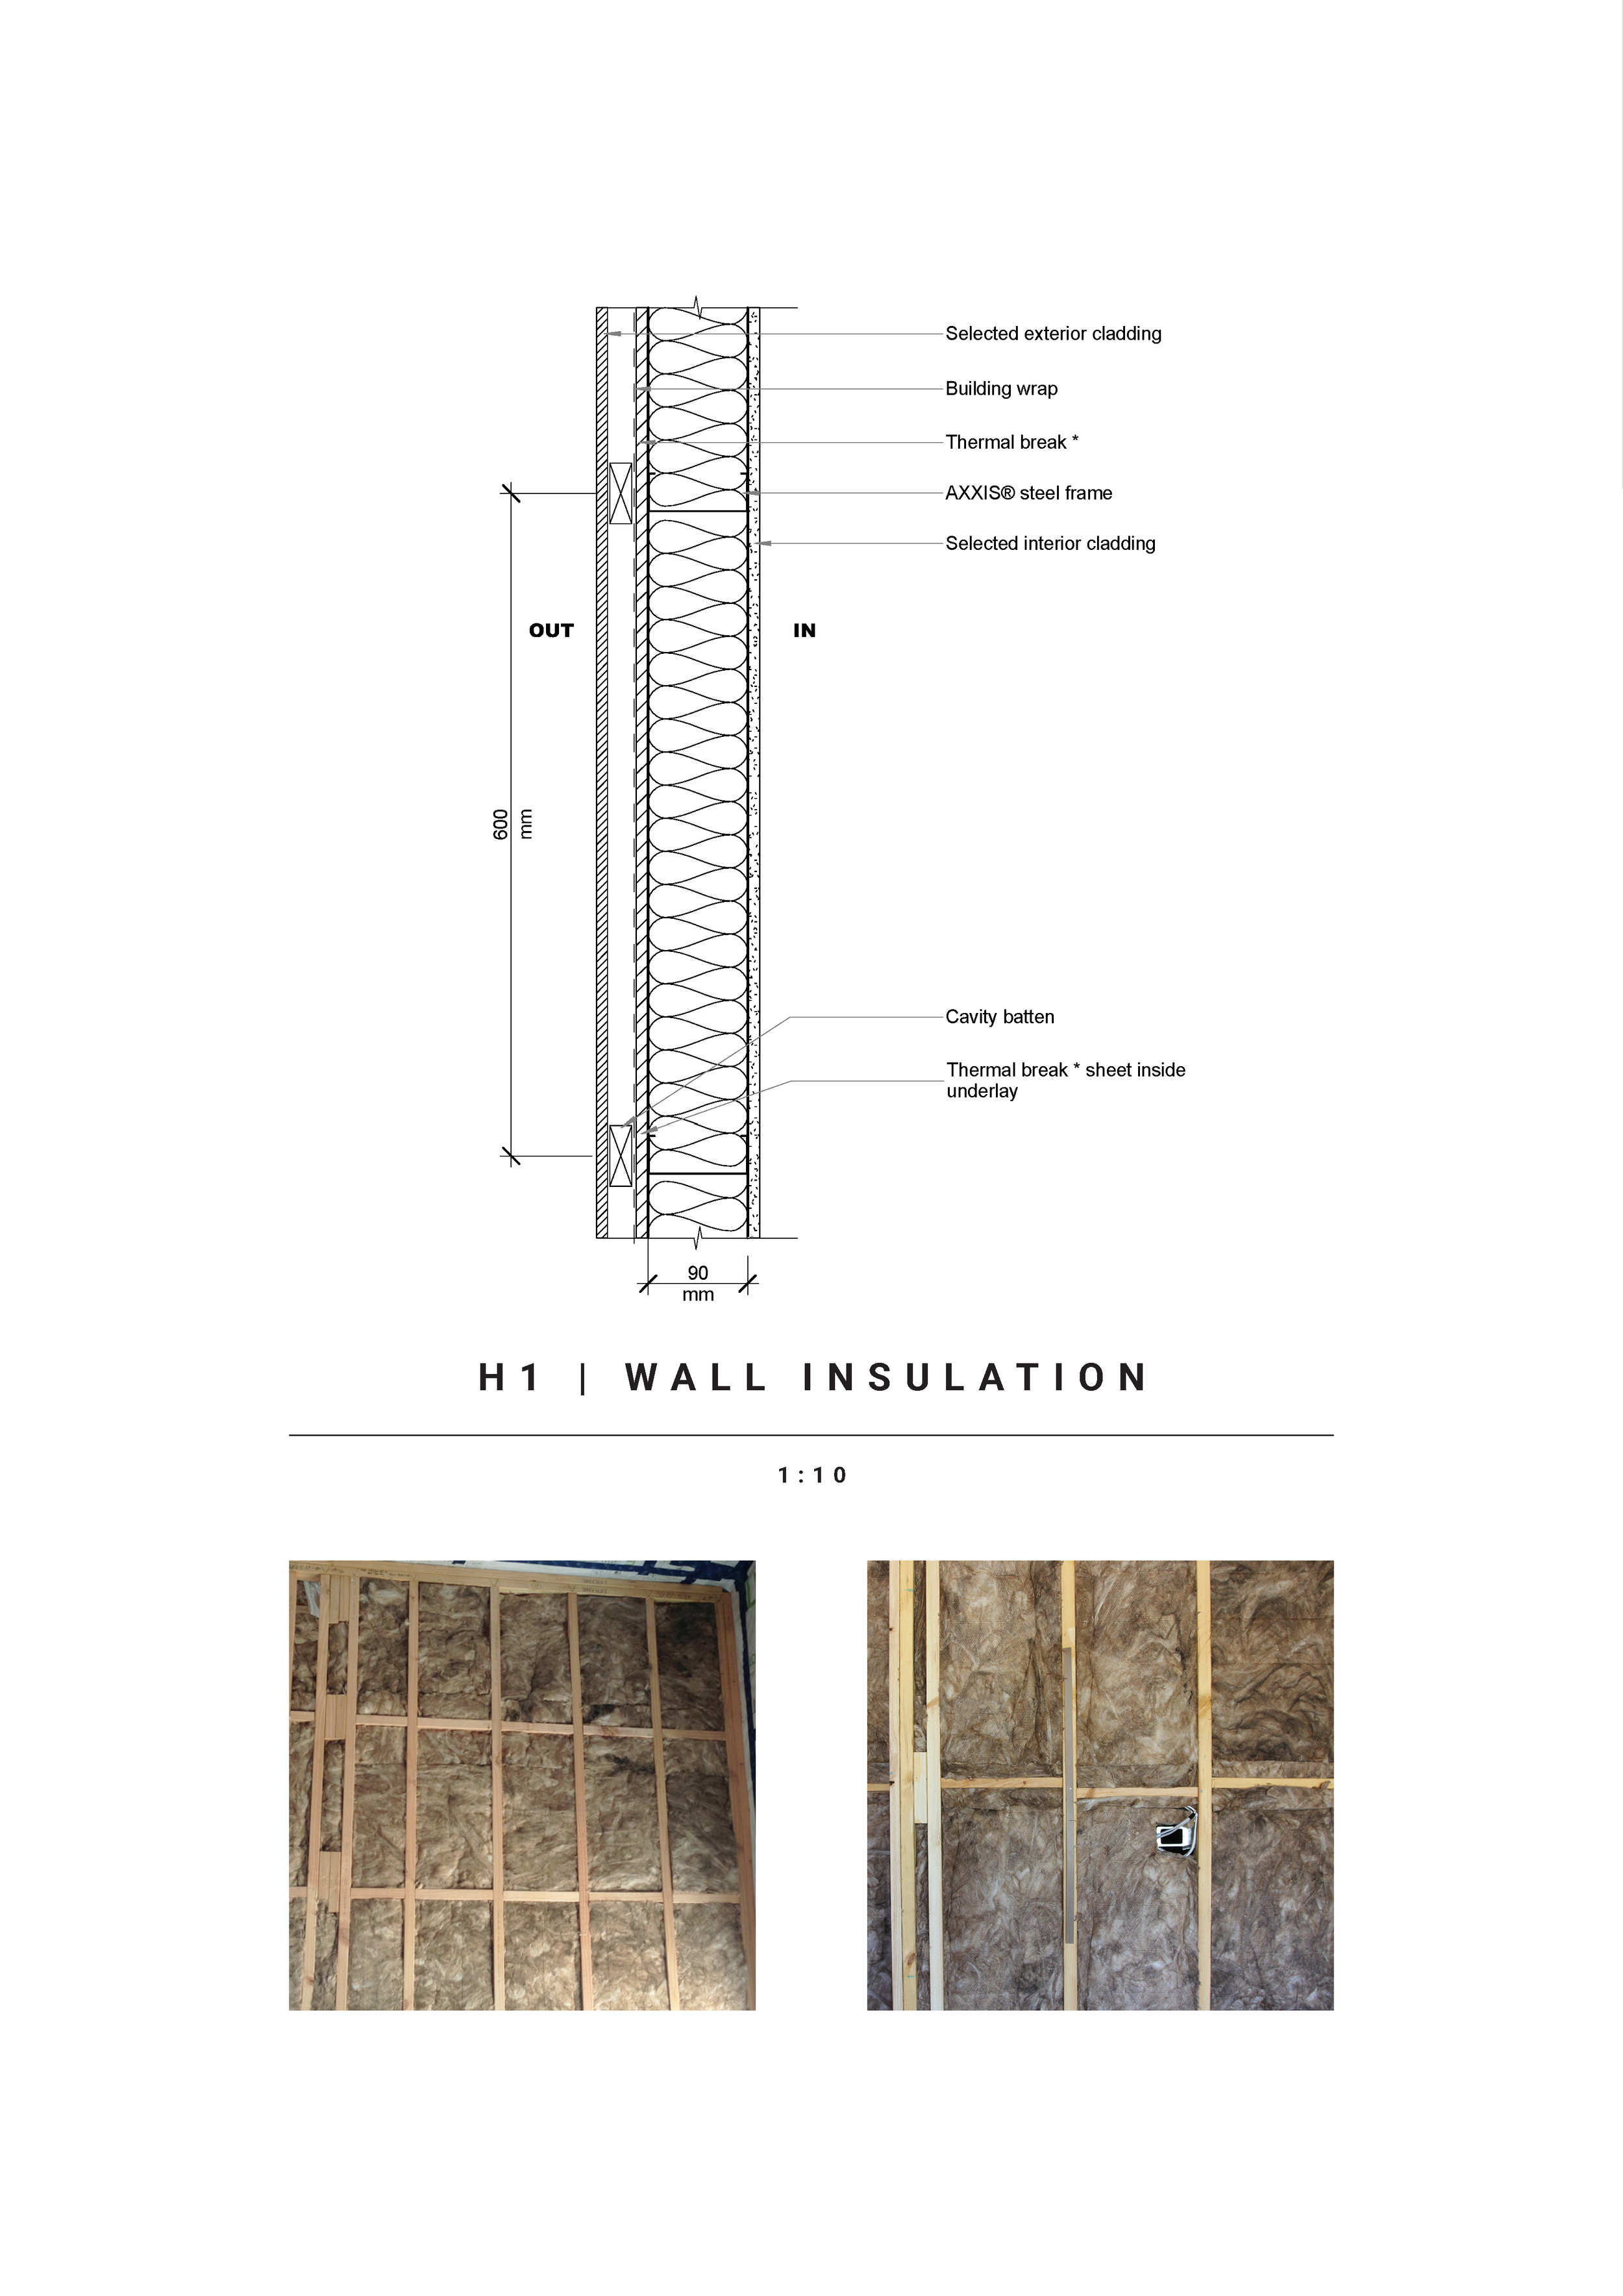 NZ BUILDING CODE JOURNAL_Page_10.png